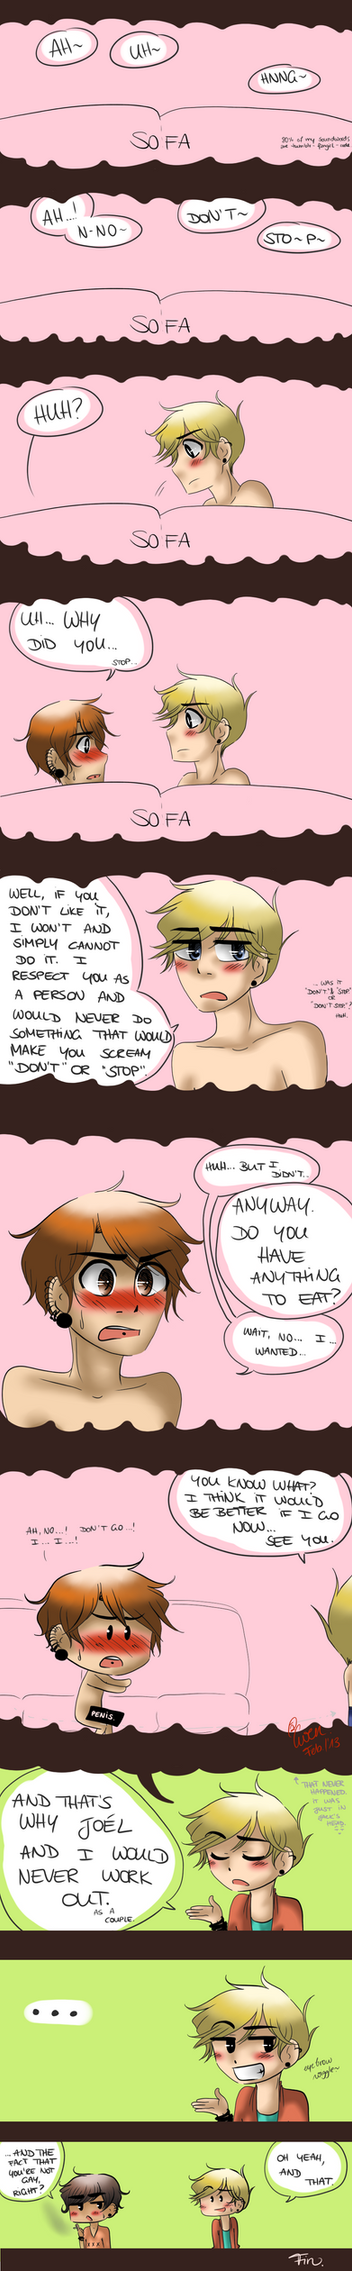 NO HOMO GANG: THAT'S WHY. by TheGweny